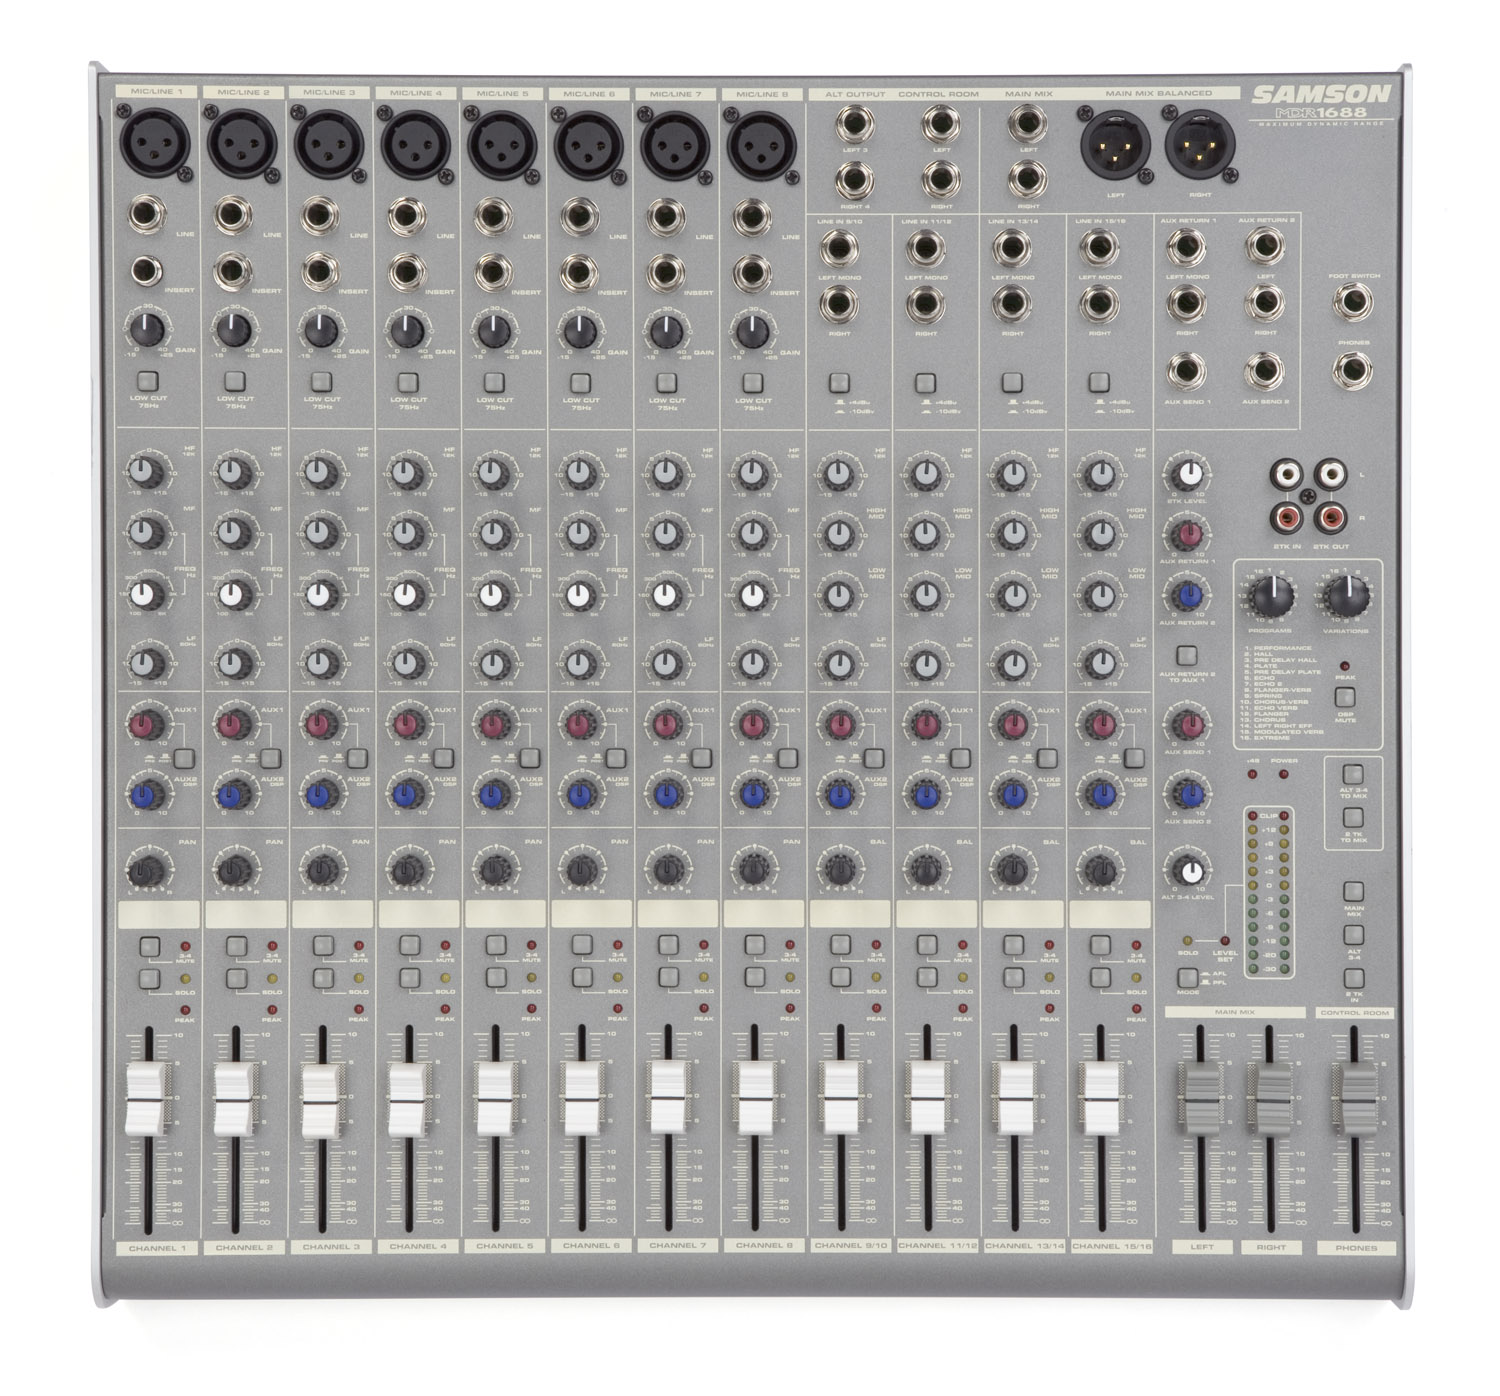 C E A E C A besides Op  S besides Simple Mic Pre   Based Lm also M Bell Ringer Cw Trx Aa Tj in addition Mdr Top. on audio mixer circuit design